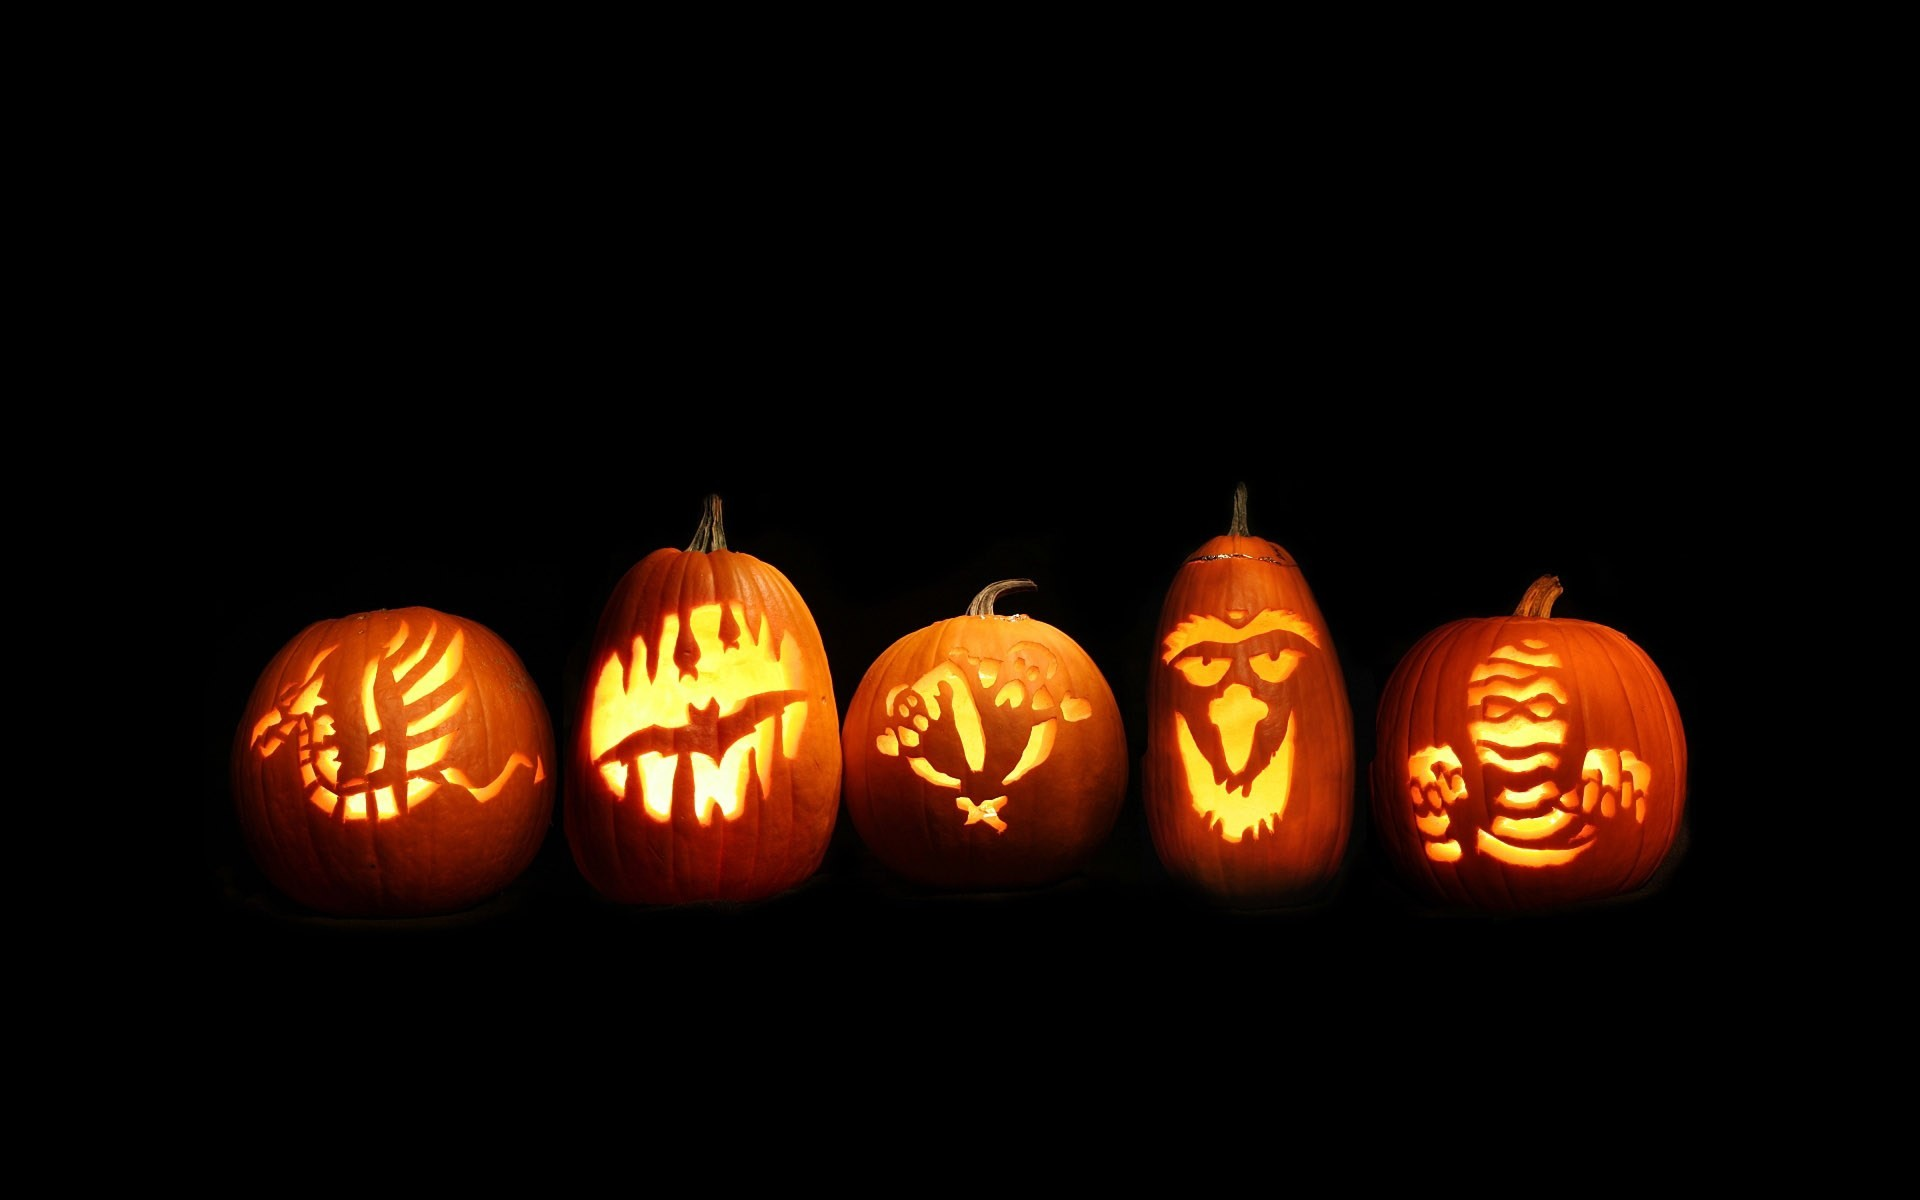 Halloween Desktop Wallpapers For Free | Holidays And Observances